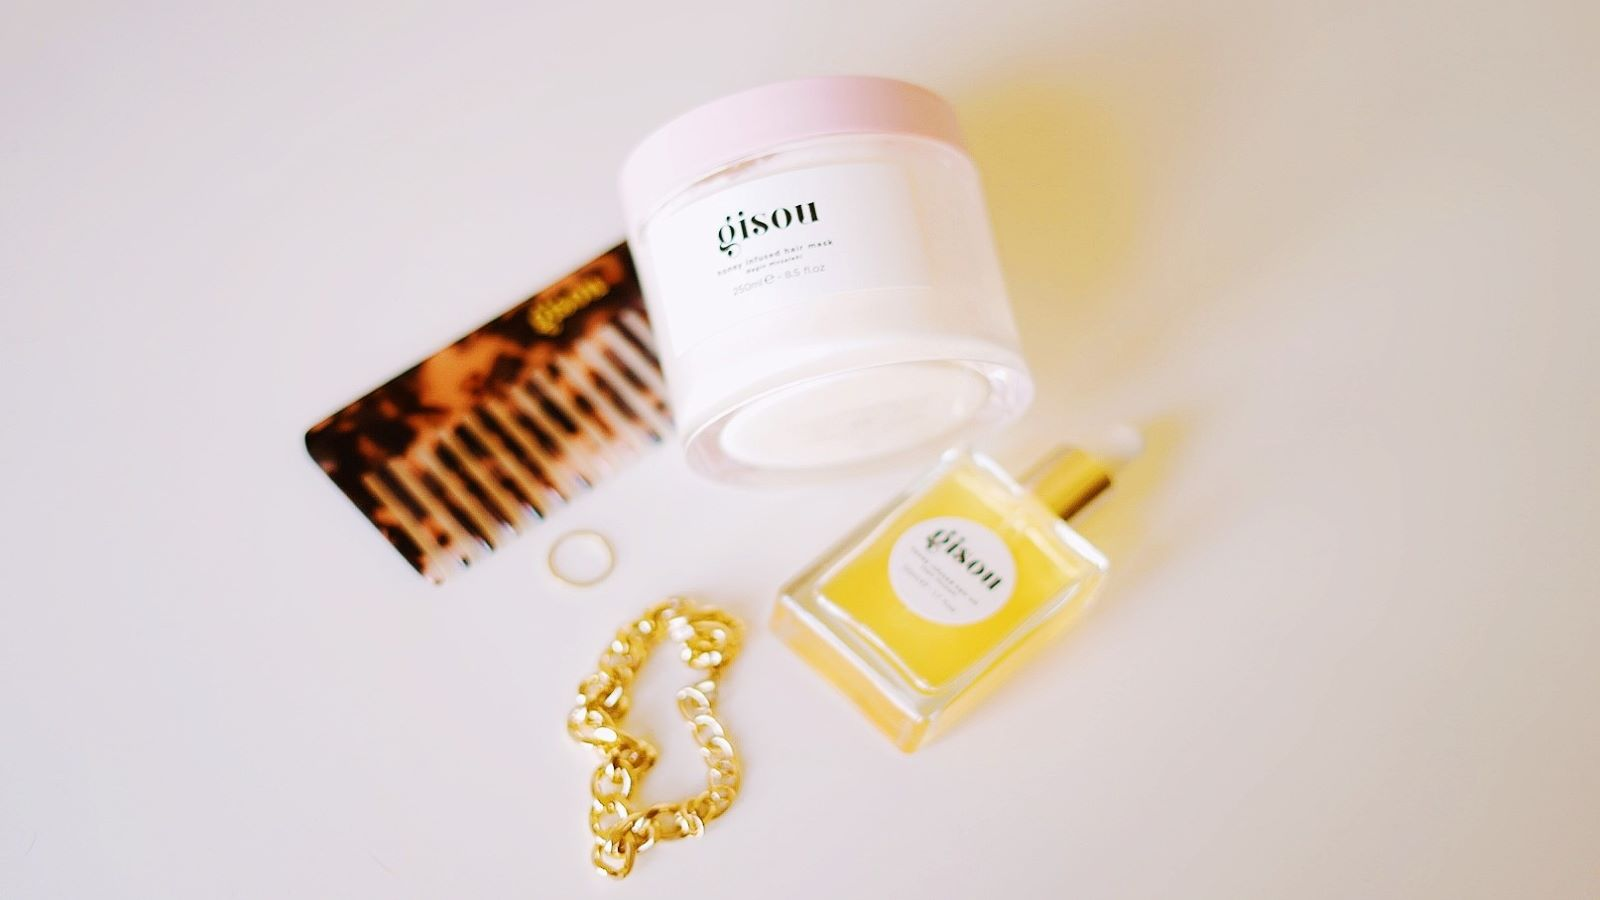 A review of Gisou's Honey Infused Hair Mask